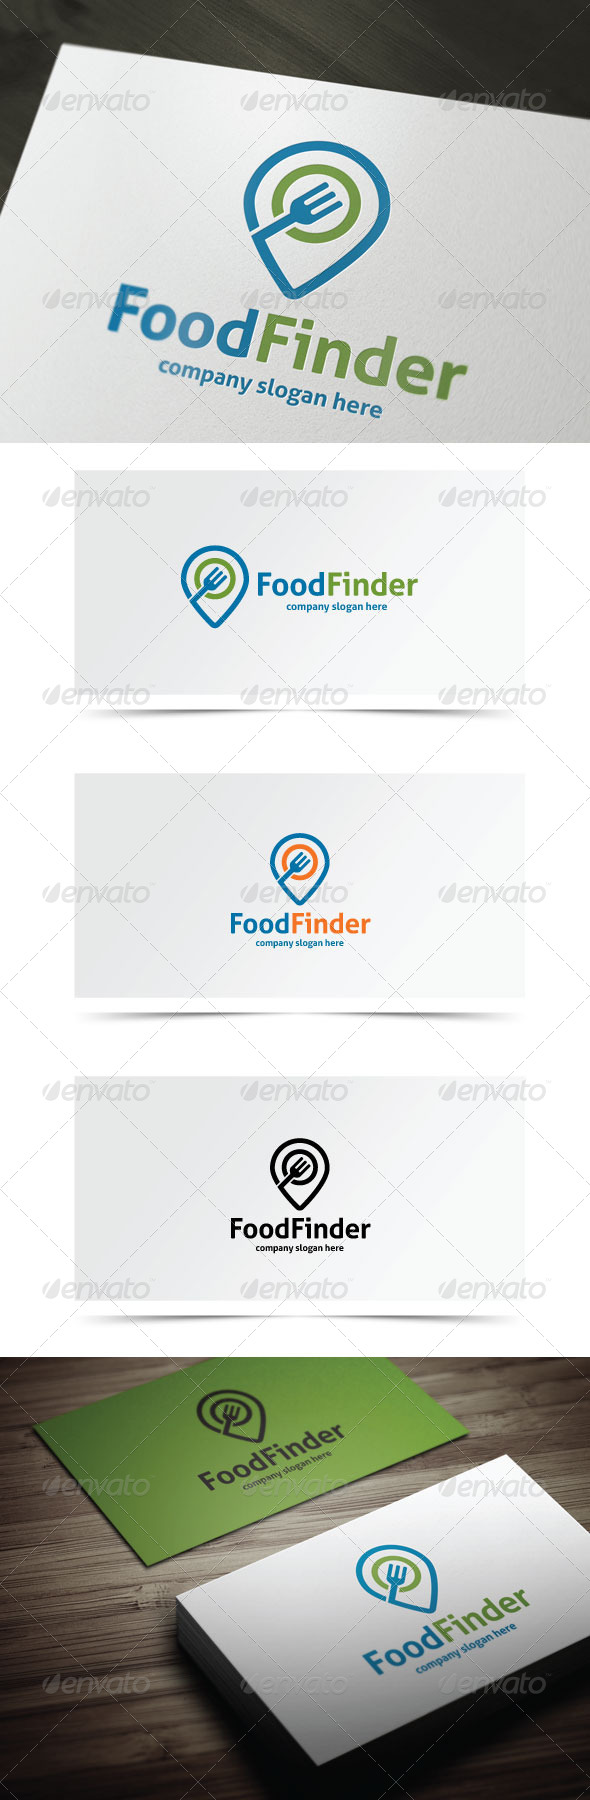 GraphicRiver Food Finder 7401562